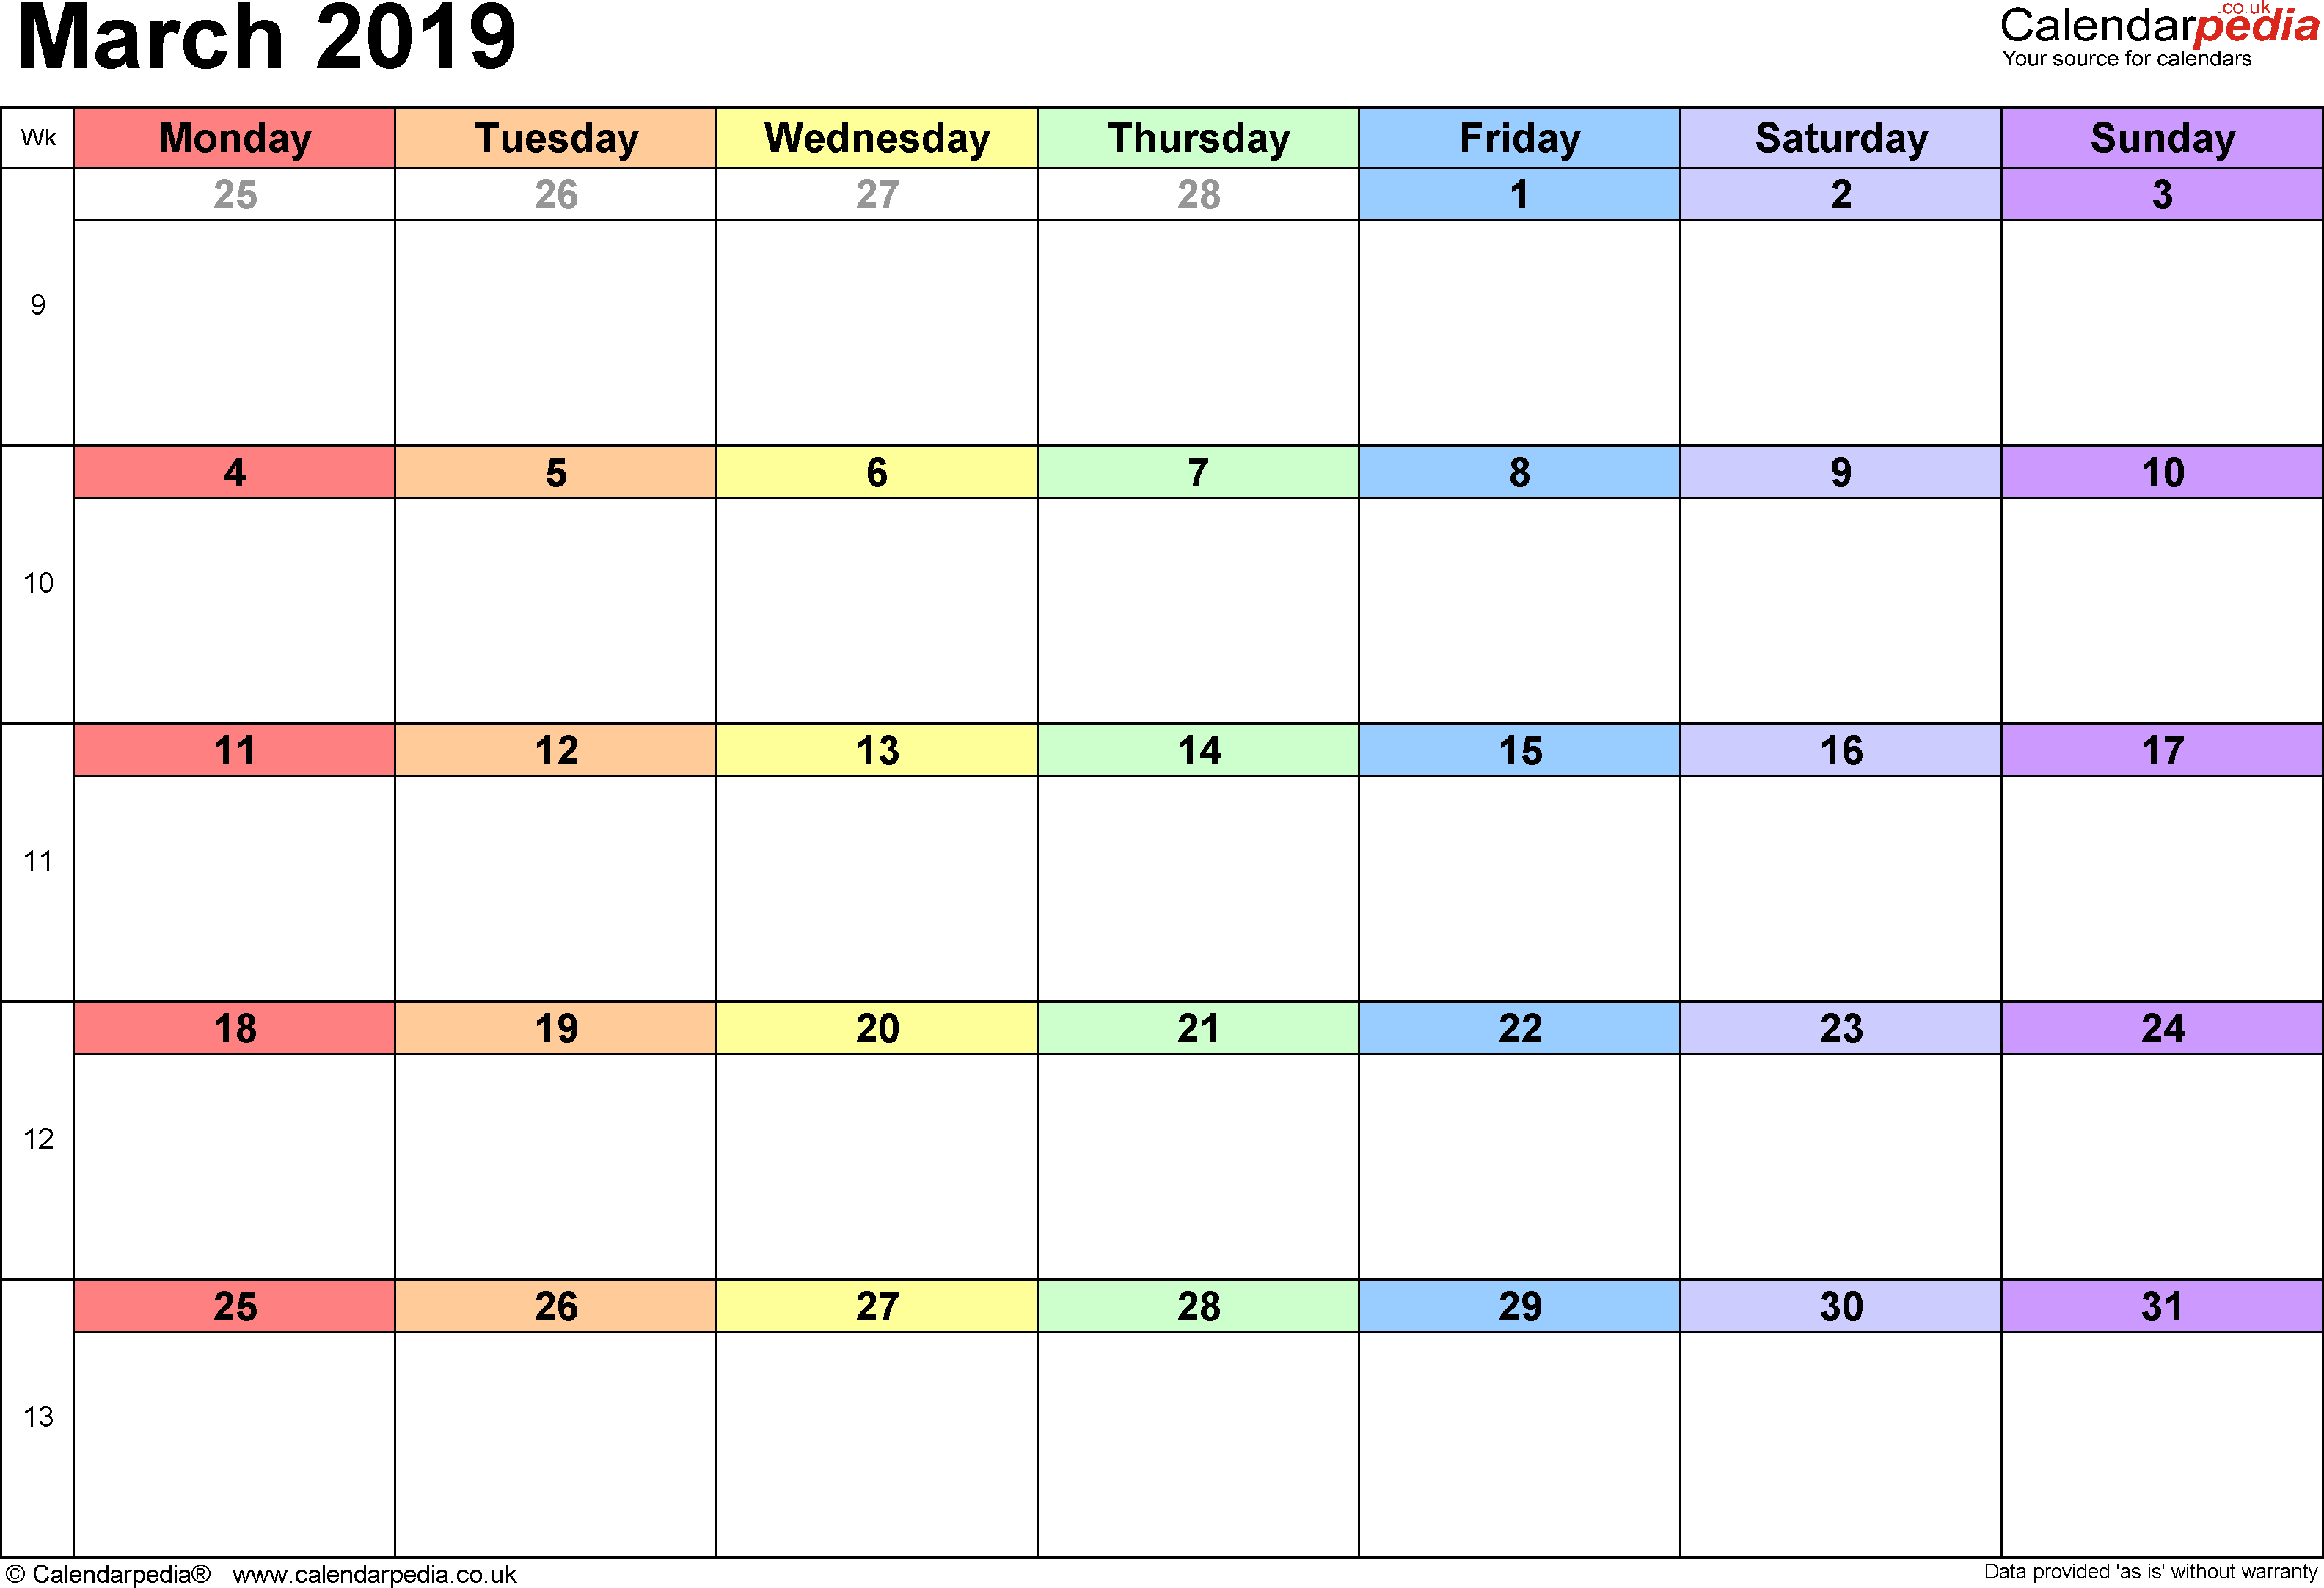 Calendar March 2019, landscape orientation, 1 page, with UK bank holidays and week numbers